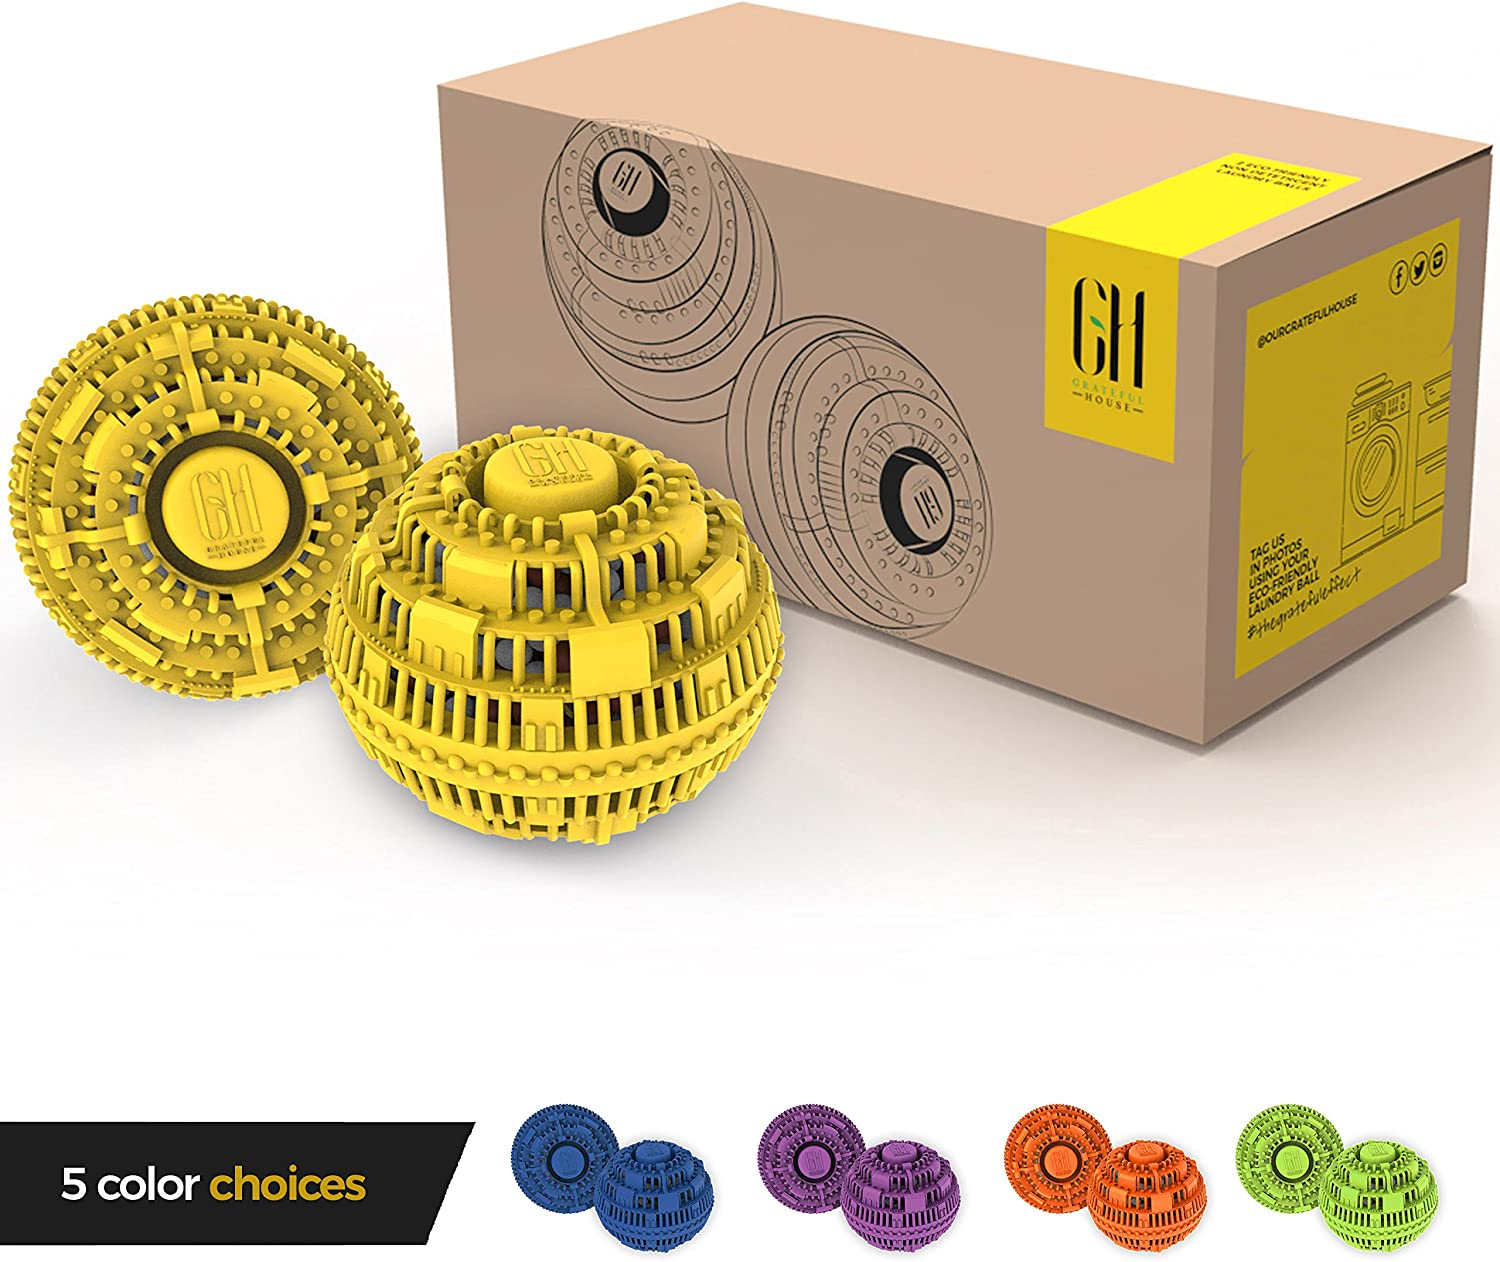 Grateful House Offer a Premium Quality Chemical Free Set of 2 Eco Friendly Laundry Balls. Never use Harsh Chemical and toxins Again with This Incredible Non Detergent Laundry System. (Yellow)